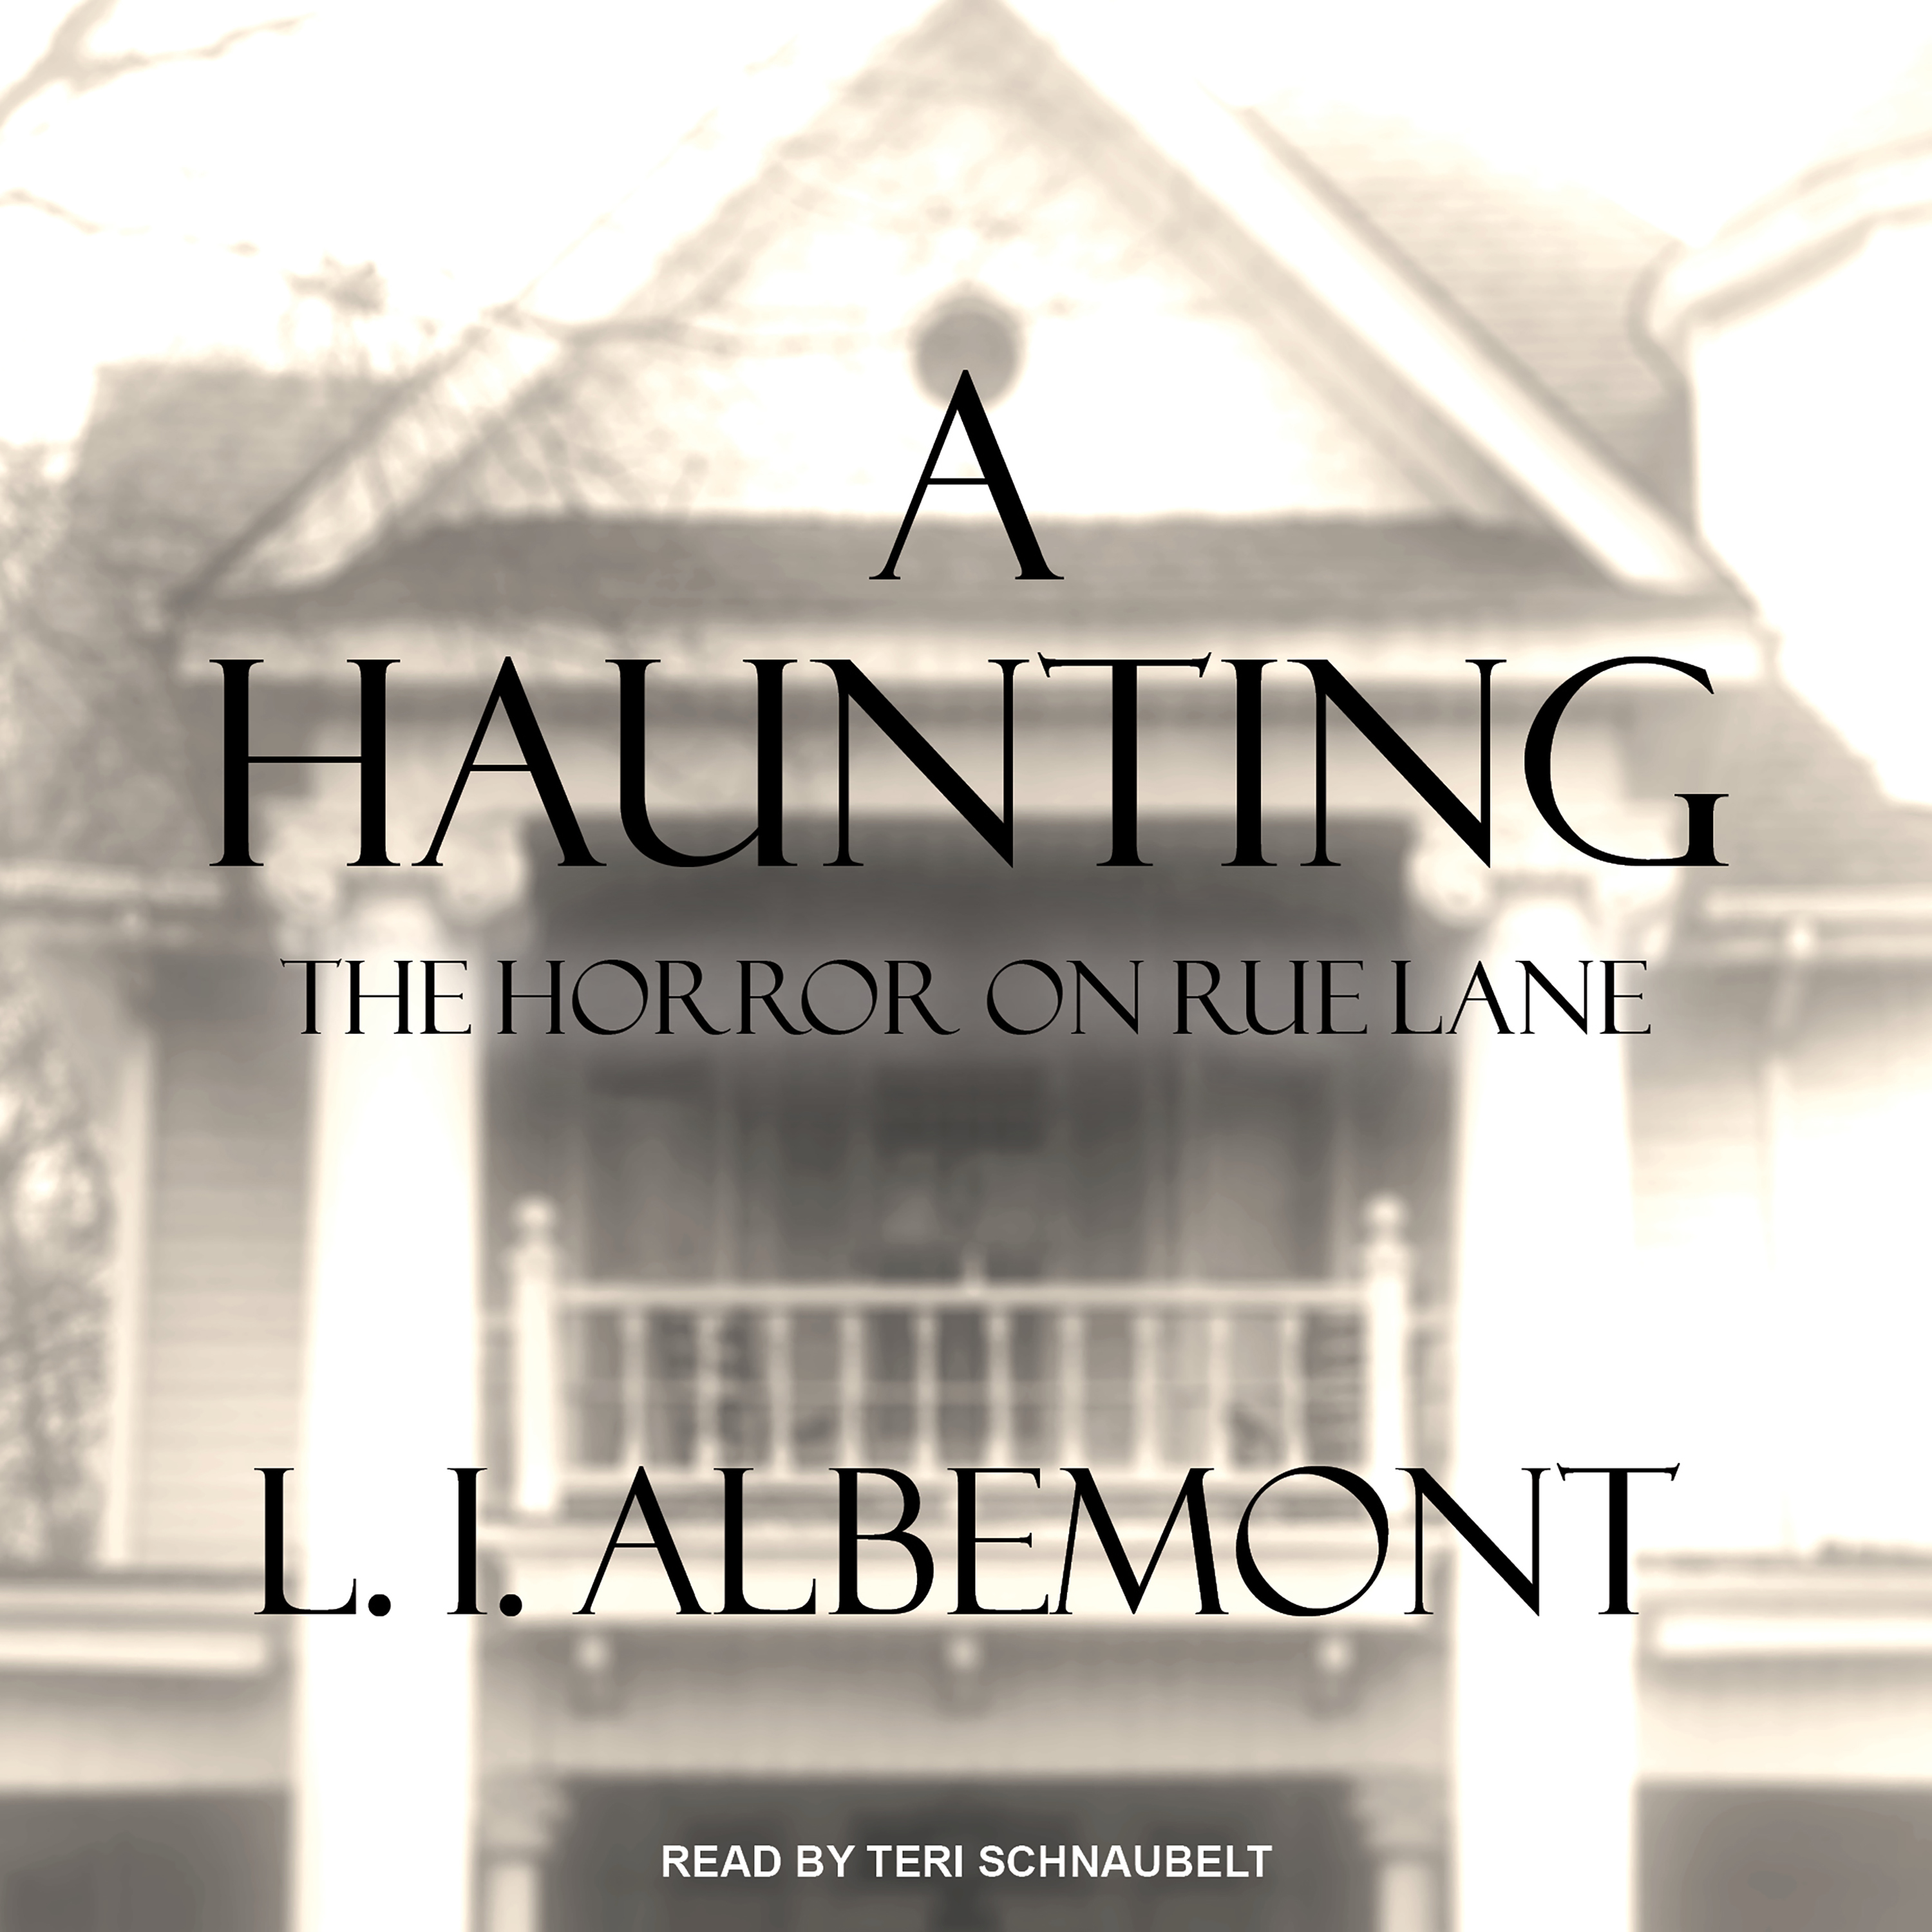 Printable A Haunting: The Horror on Rue Lane Audiobook Cover Art